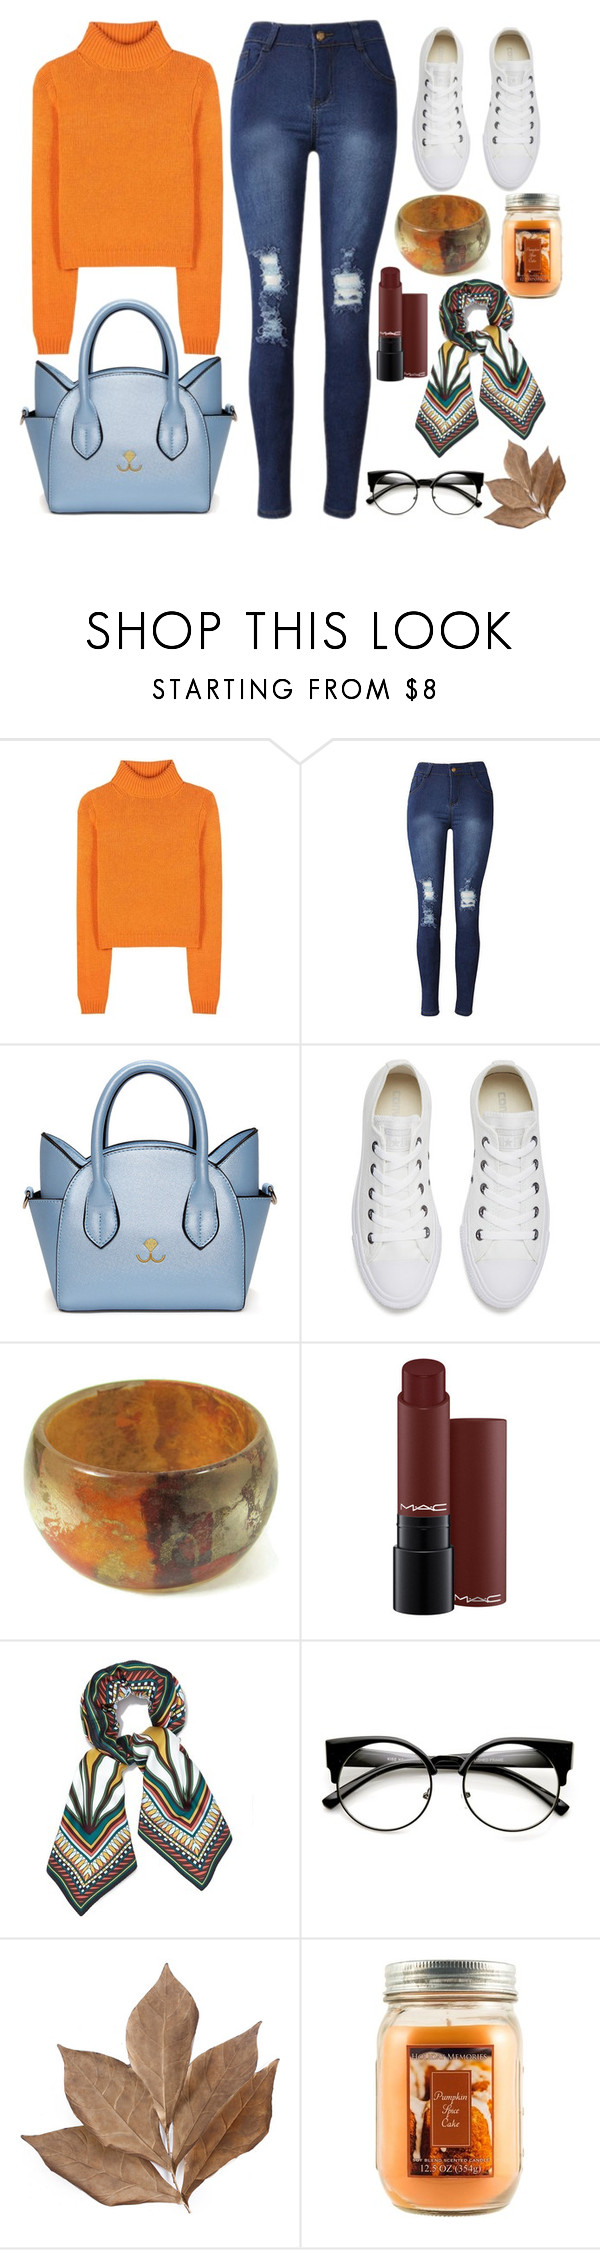 """""""J'adore"""" by organichild ❤ liked on Polyvore featuring Acne Studios, Converse, Tory Burch, Bliss Studio and Holiday Memories"""